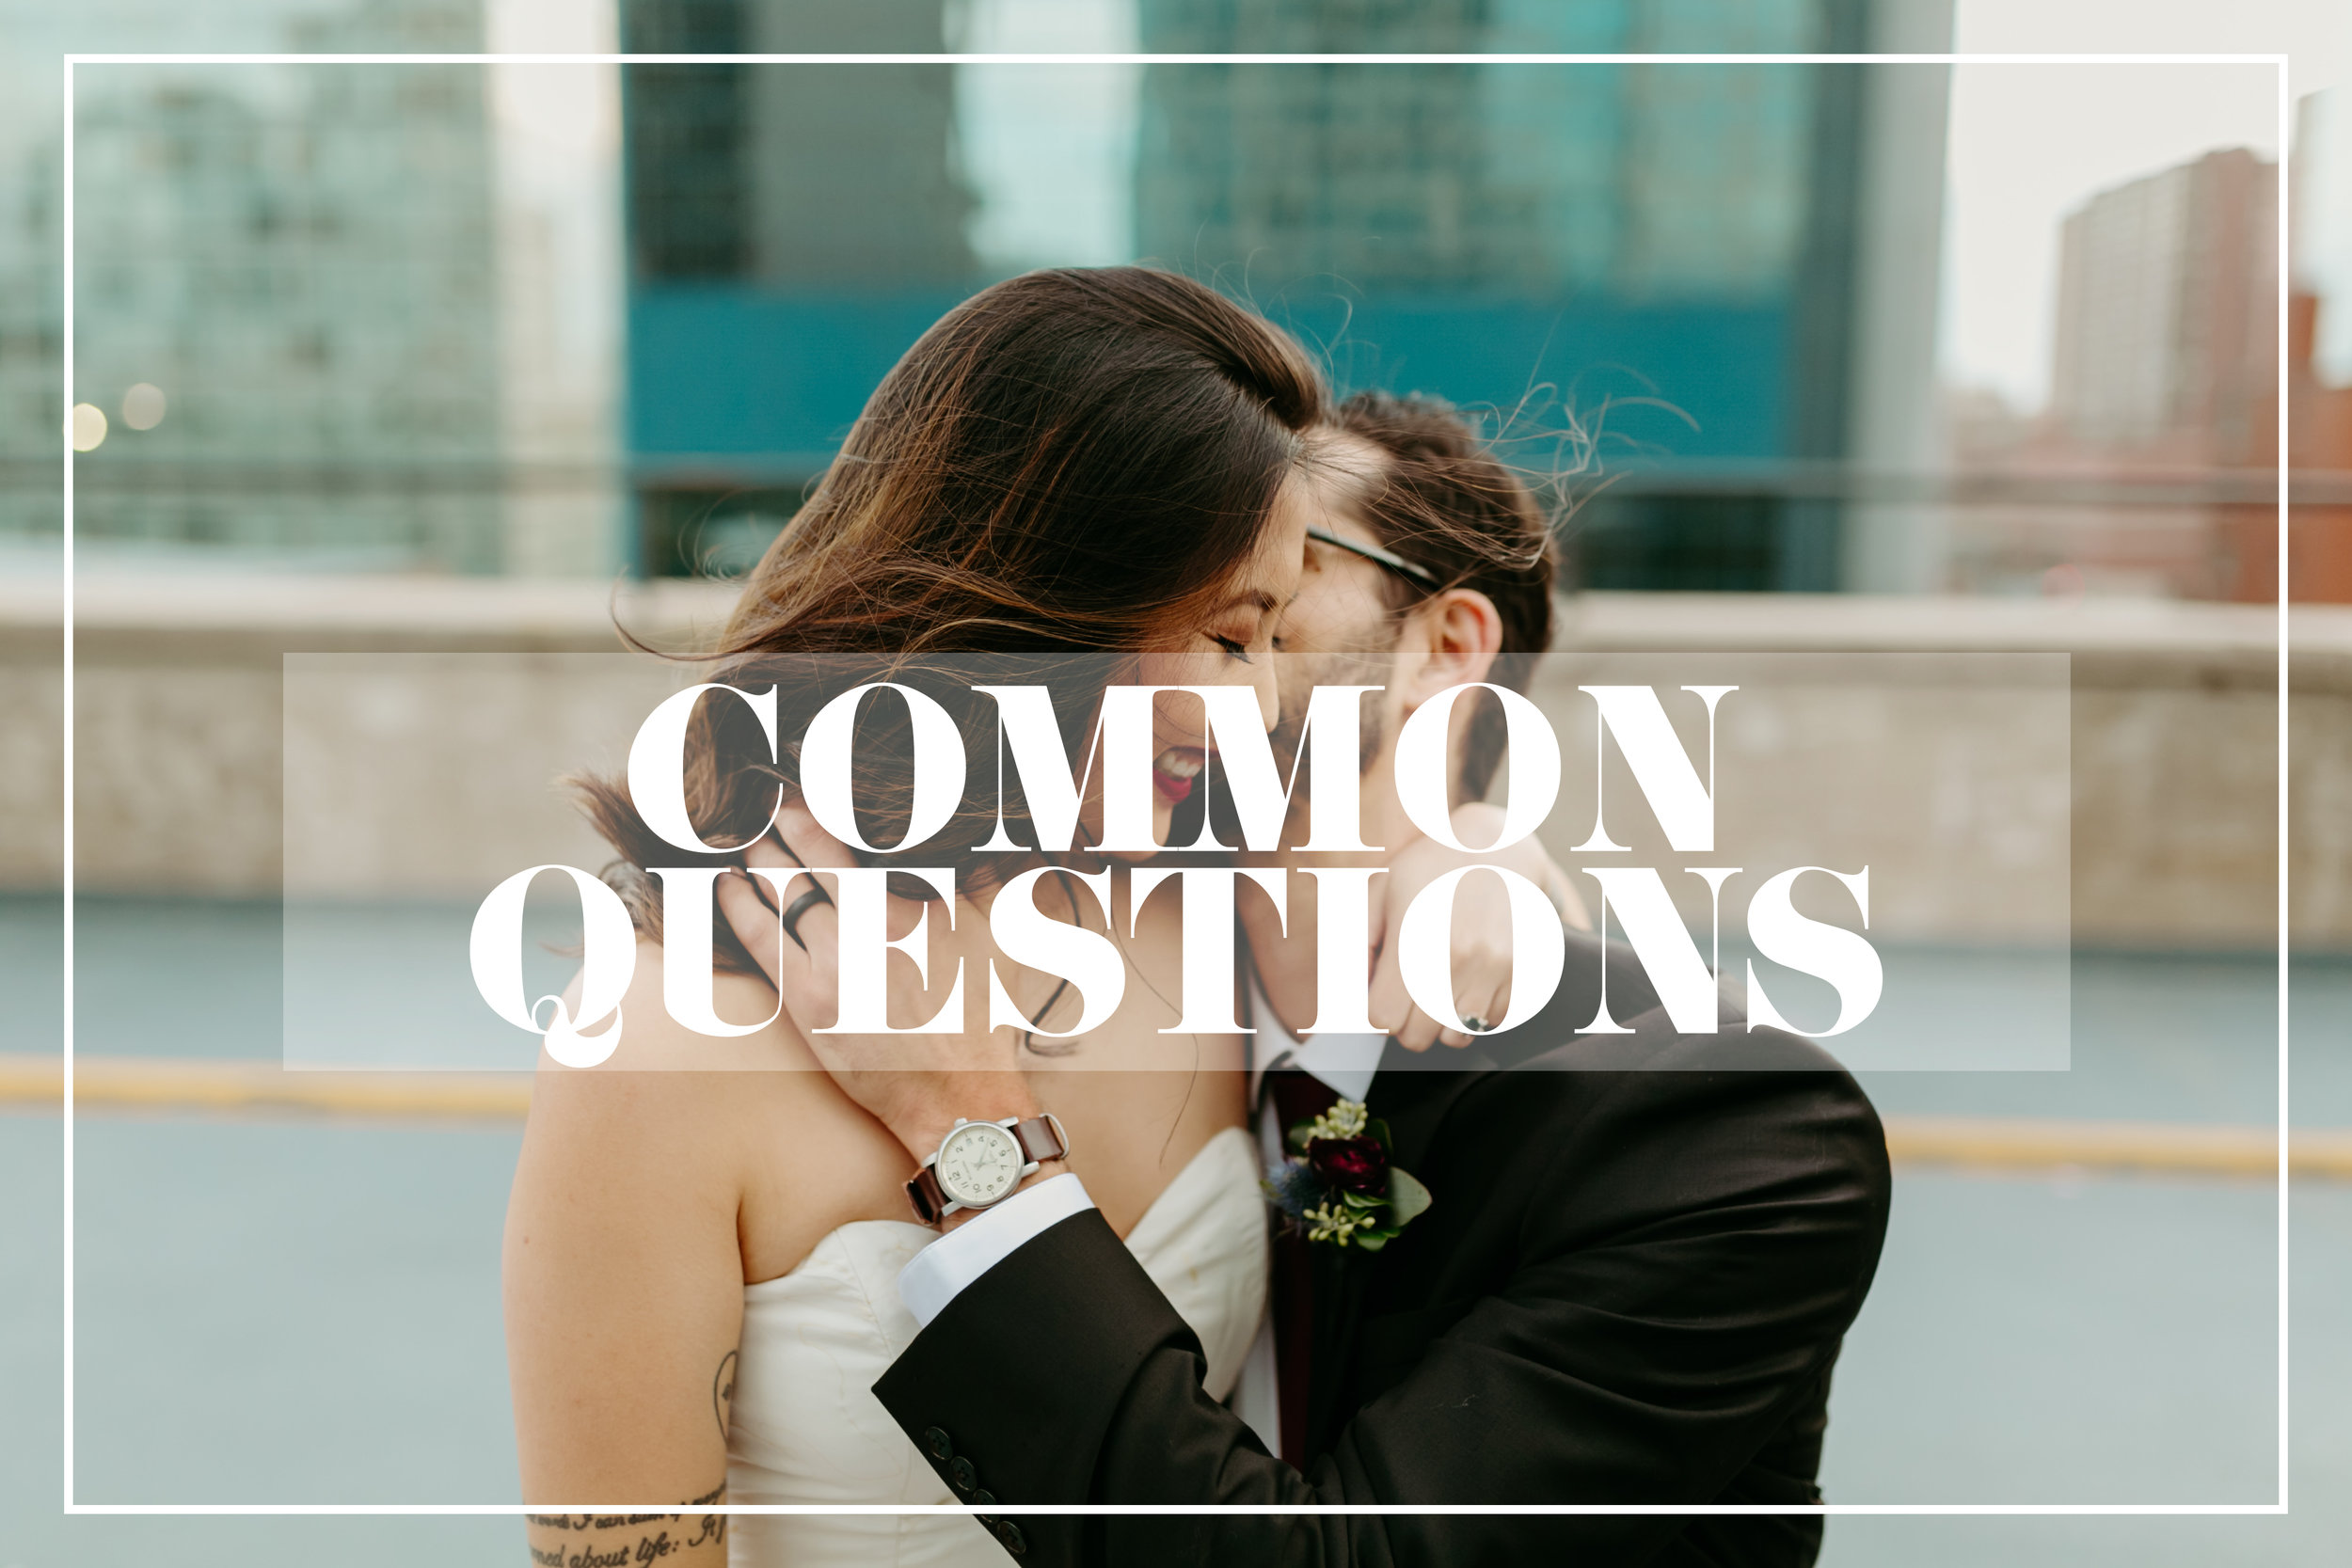 CommonQuestionsWedding.jpg